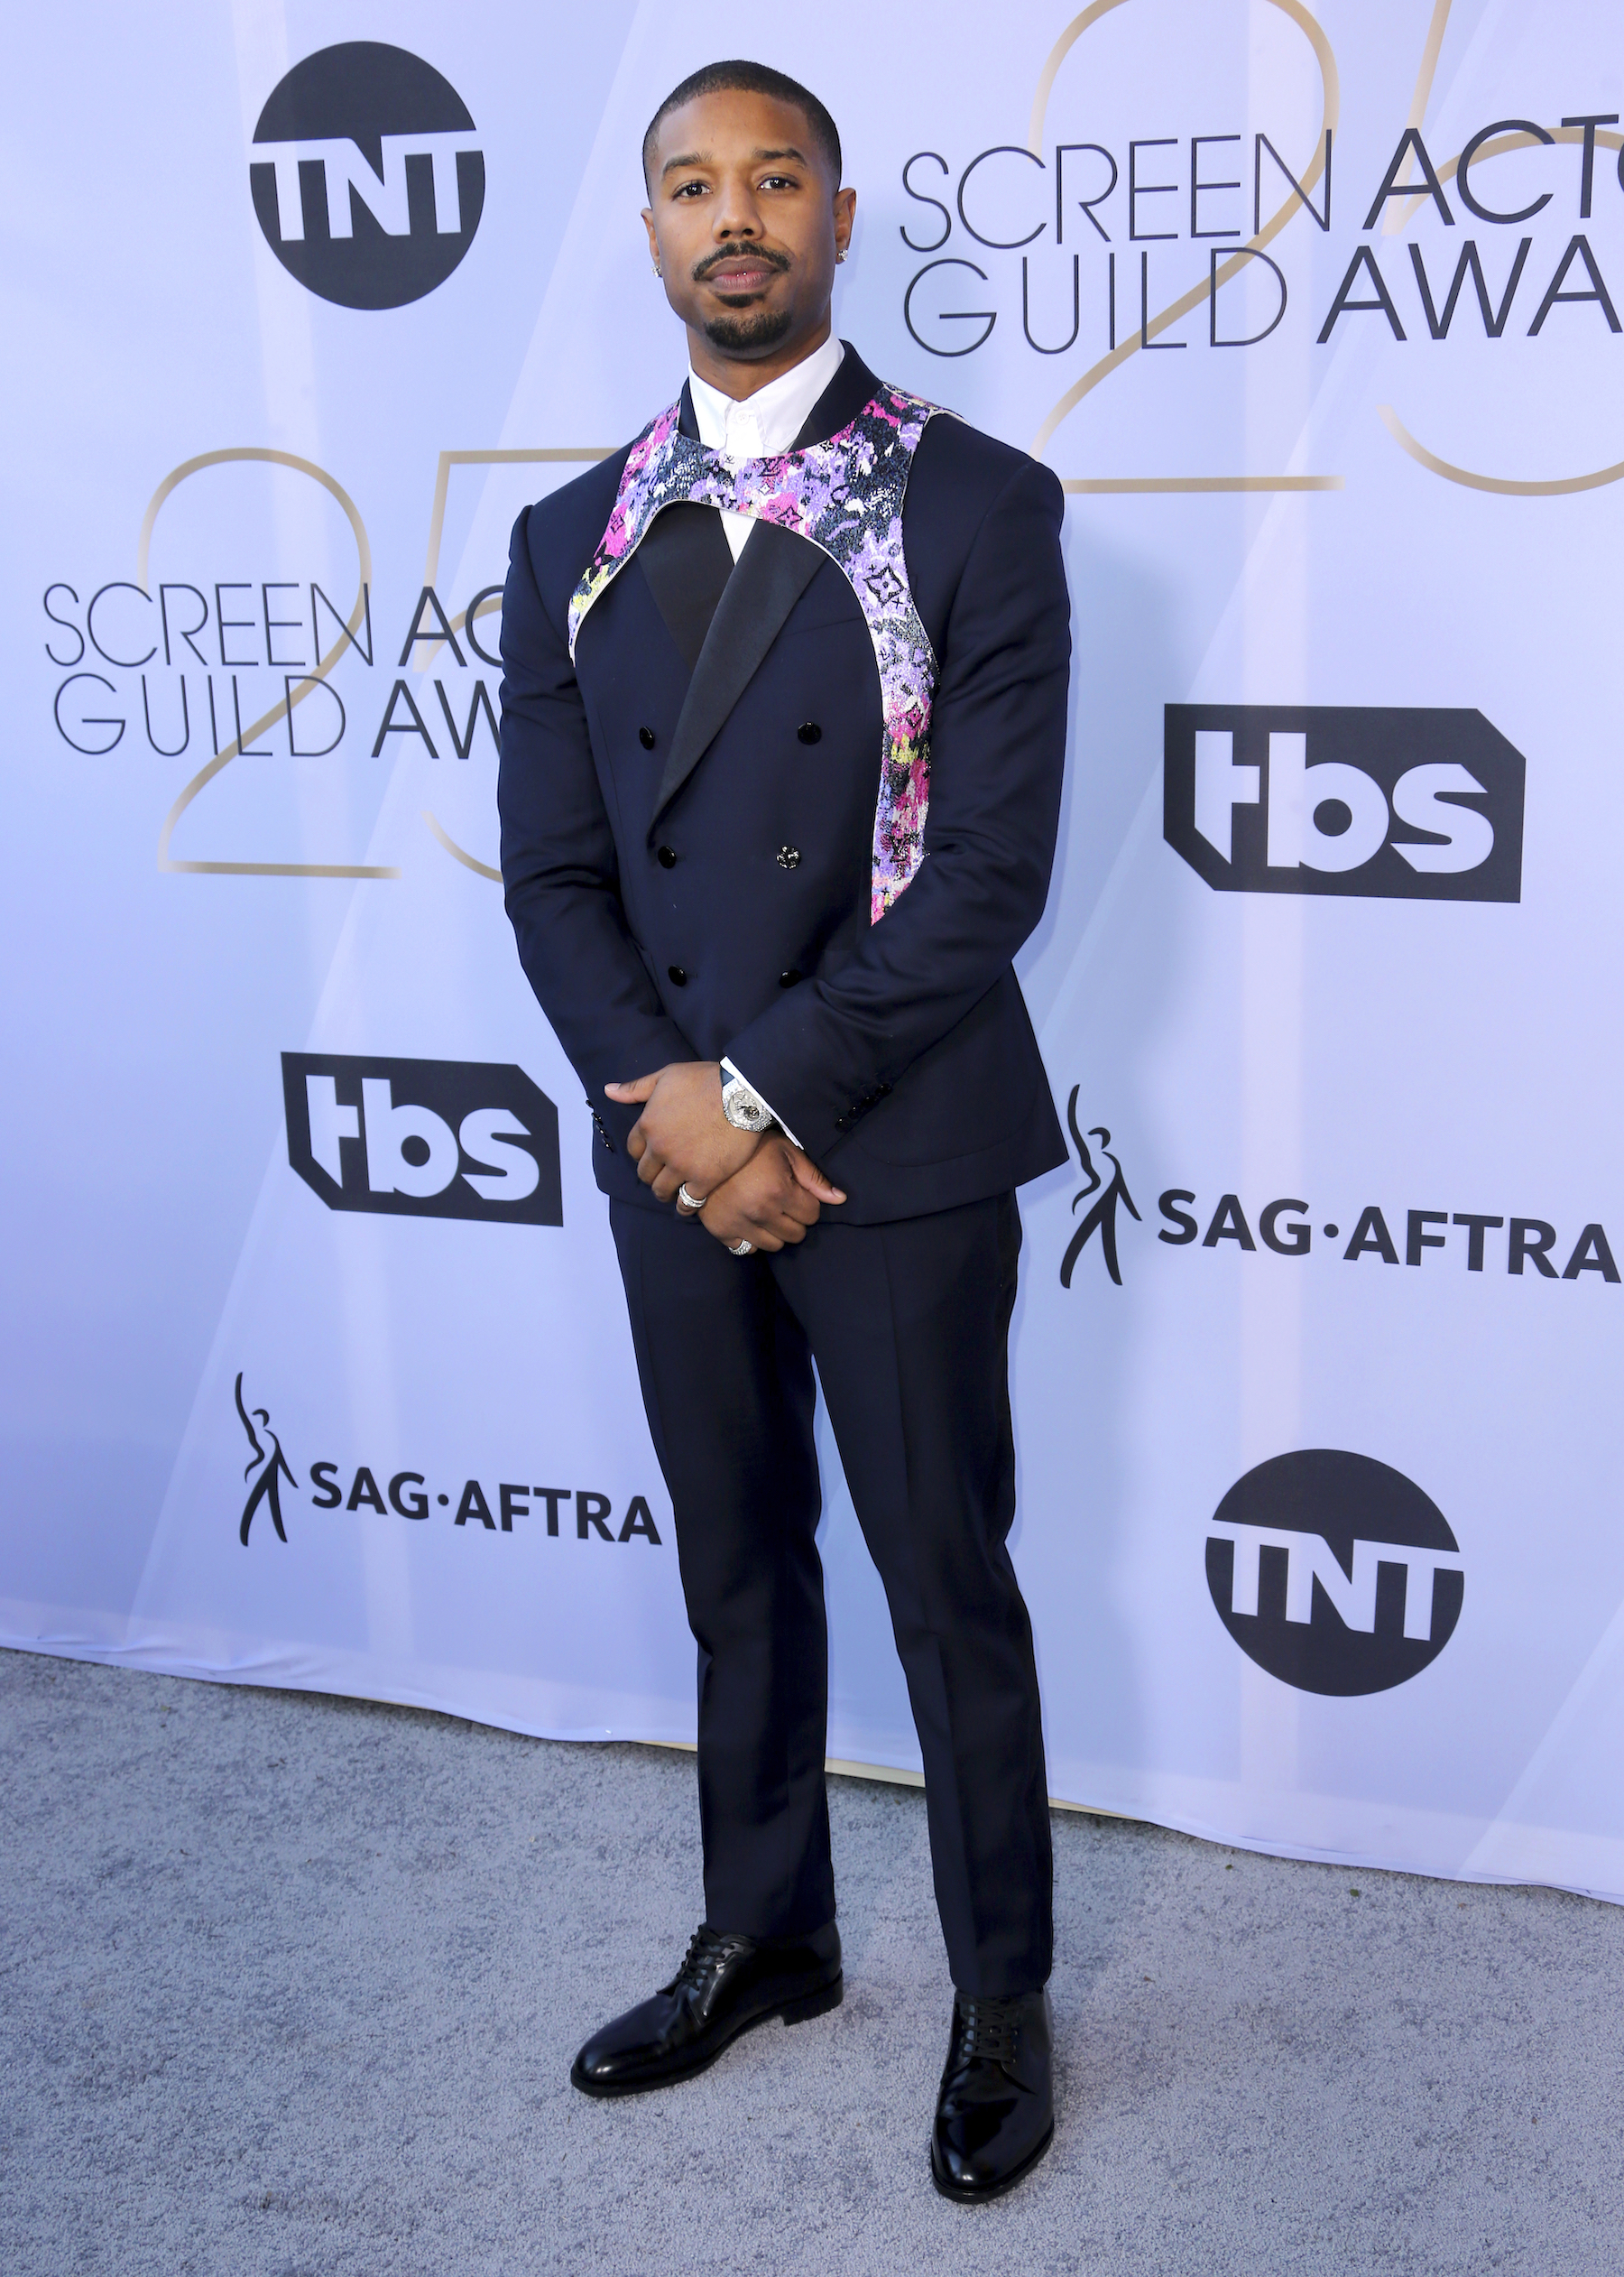 <div class='meta'><div class='origin-logo' data-origin='AP'></div><span class='caption-text' data-credit='Willy Sanjuan/Invision/AP'>Michael B. Jordan arrives at the 25th annual Screen Actors Guild Awards at the Shrine Auditorium & Expo Hall on Sunday, Jan. 27, 2019, in Los Angeles.</span></div>